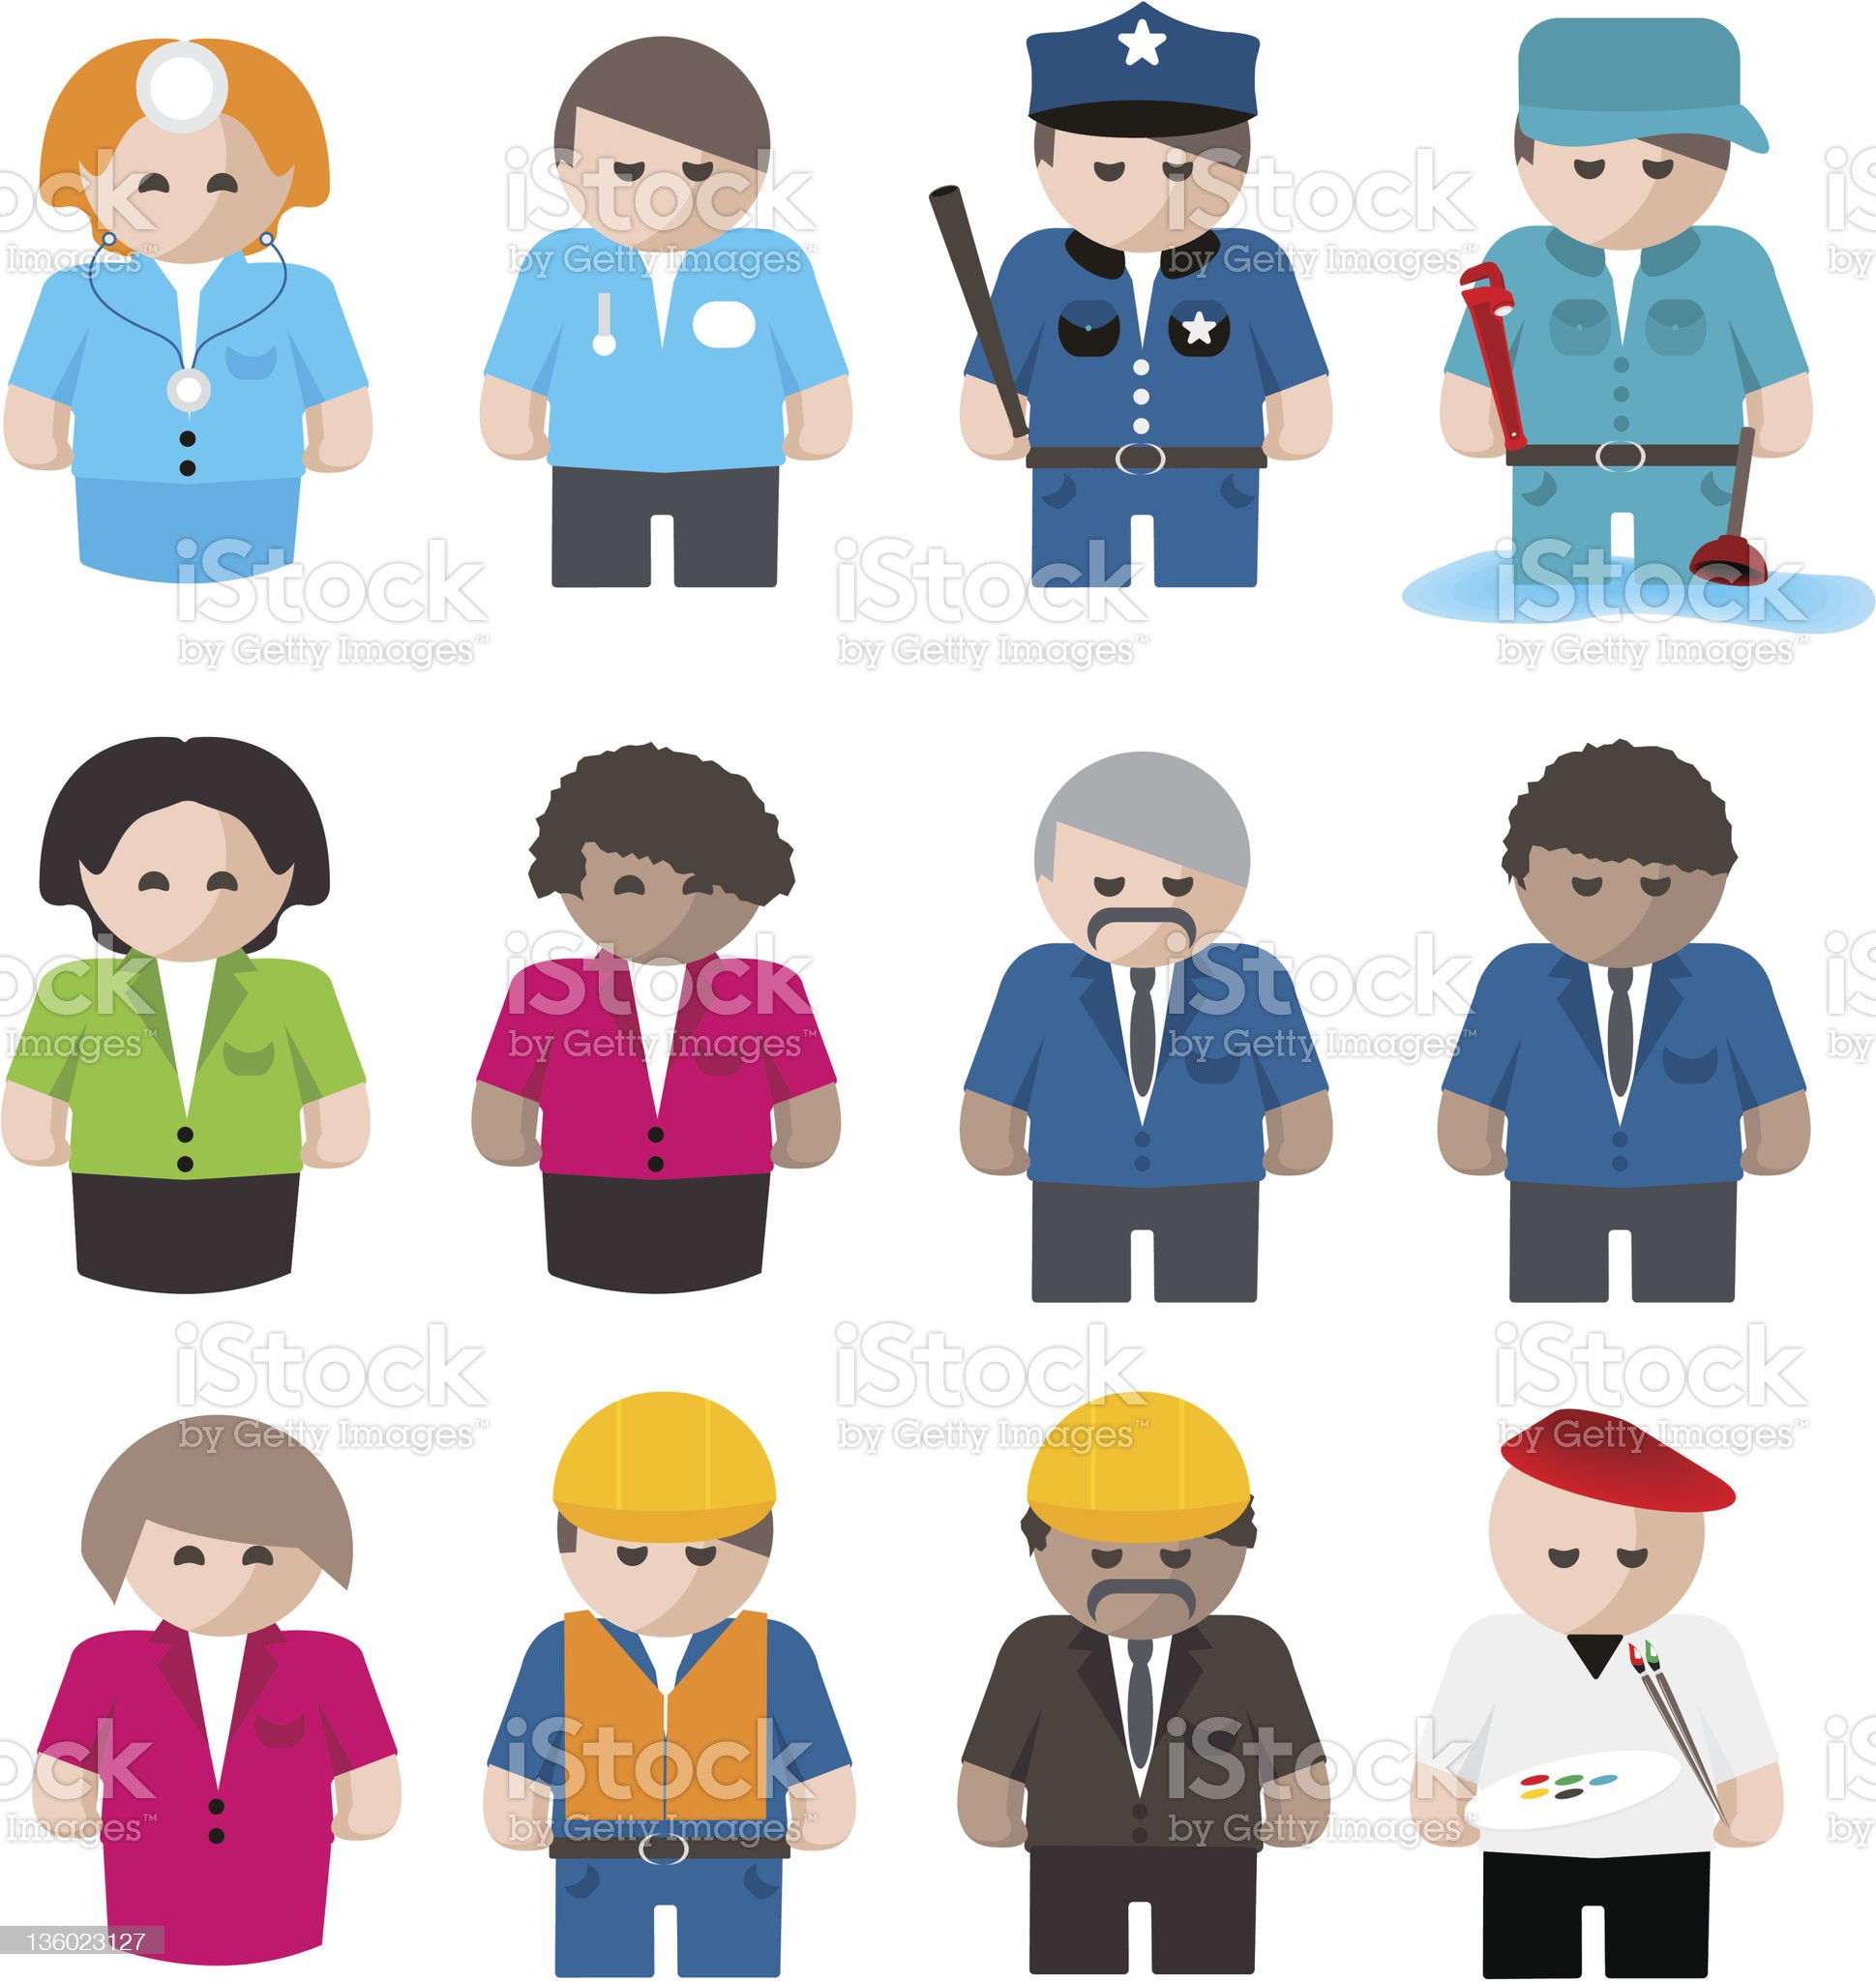 Profession Characters royalty-free stock photo